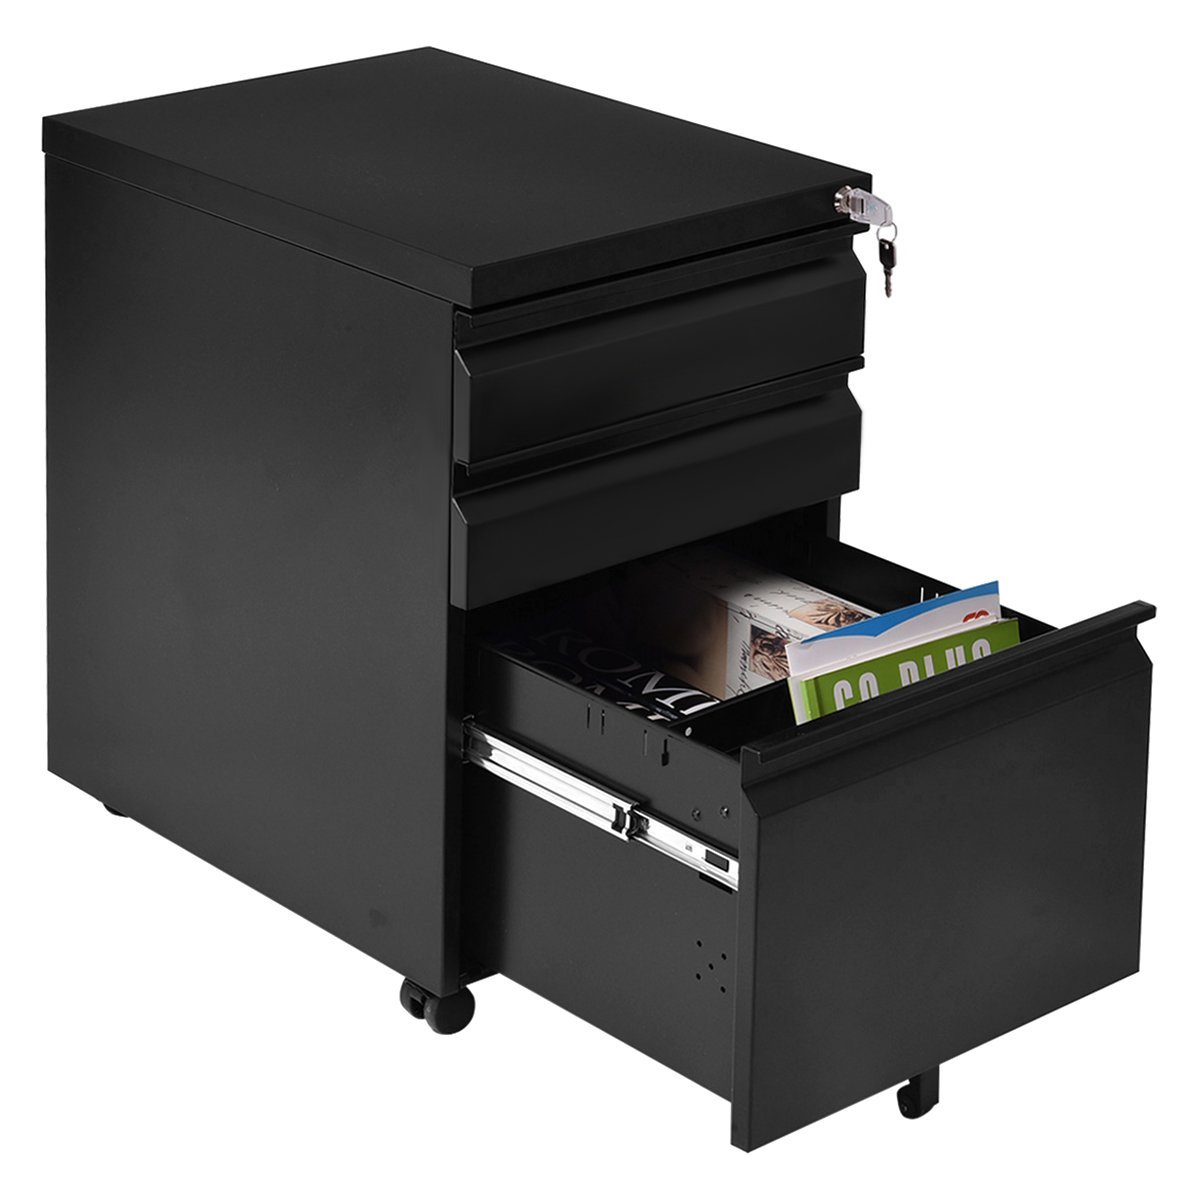 Giantex Rolling Mobile File W/3 Lockable Drawers and Pedestal for Office Study Room Home Steel Storage Cabinet by Giantex (Image #5)